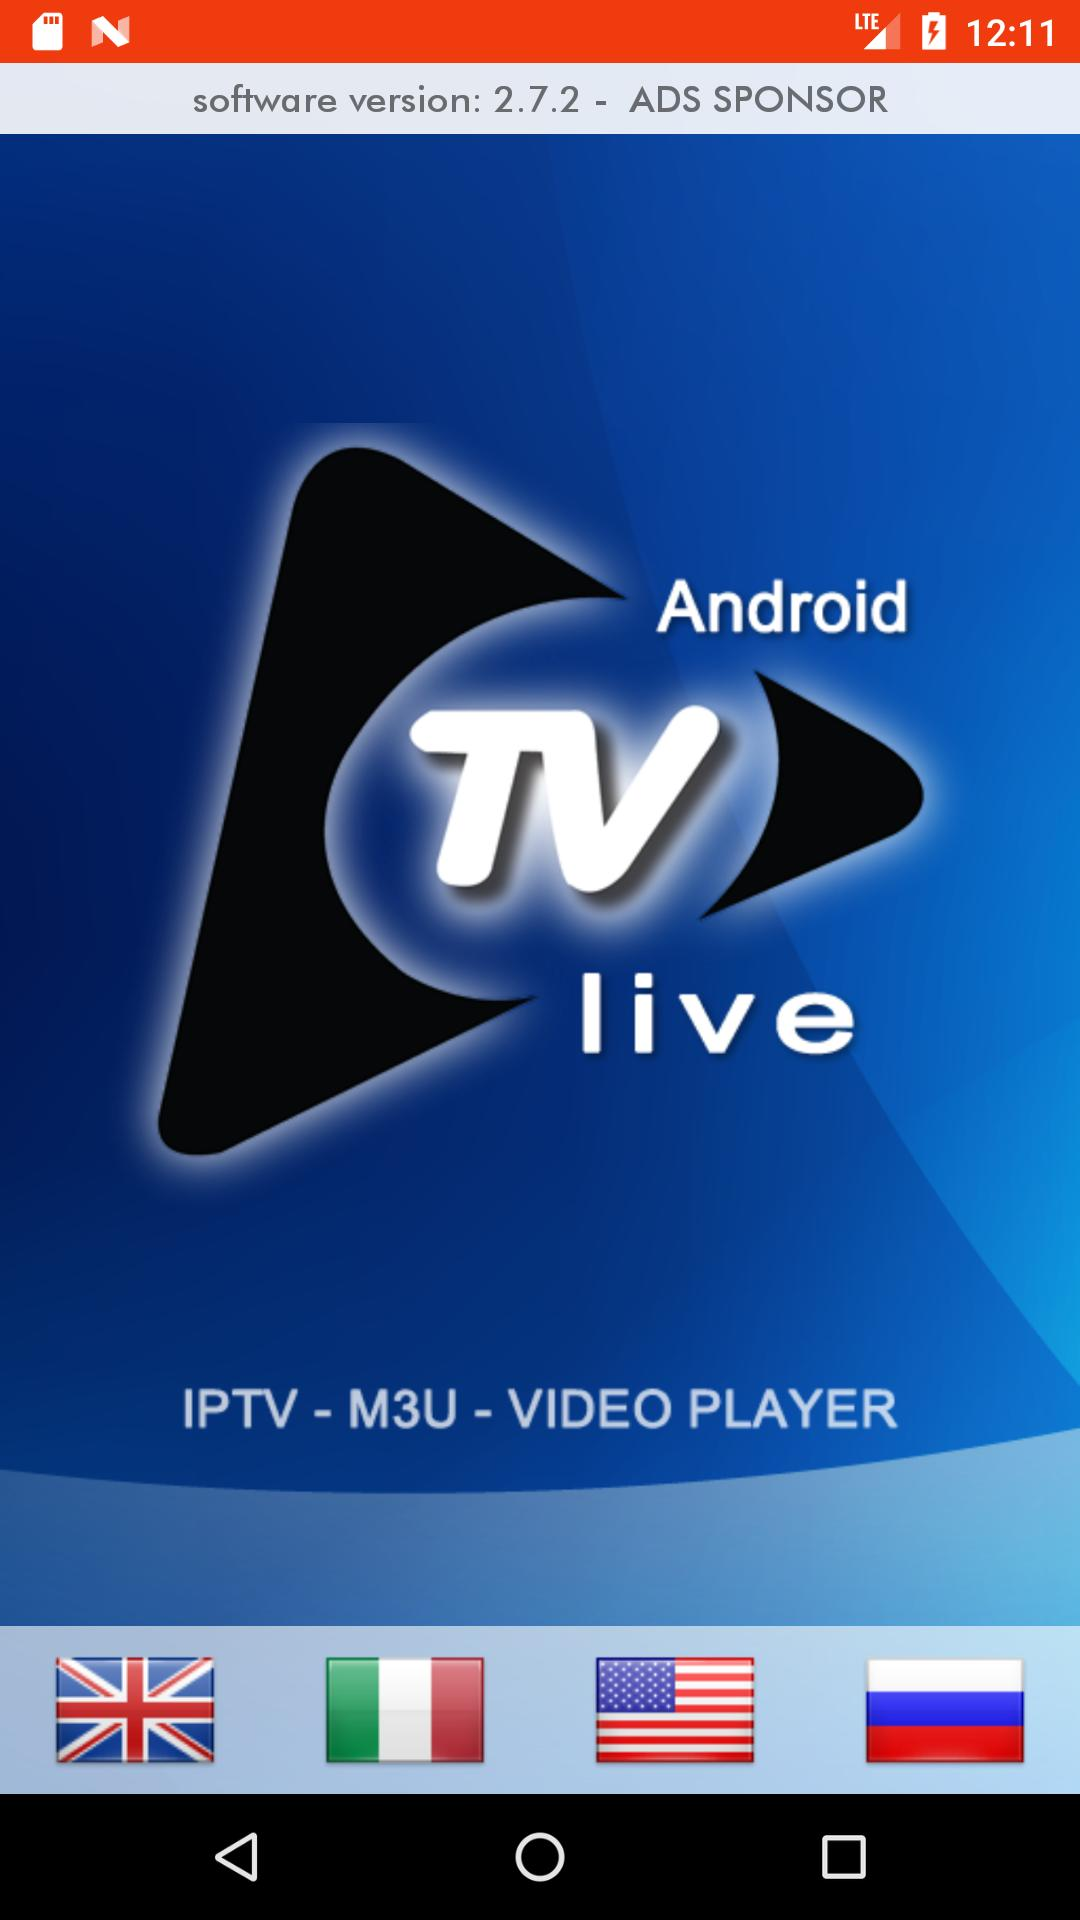 Iptv M3u Player For Android Apk Download